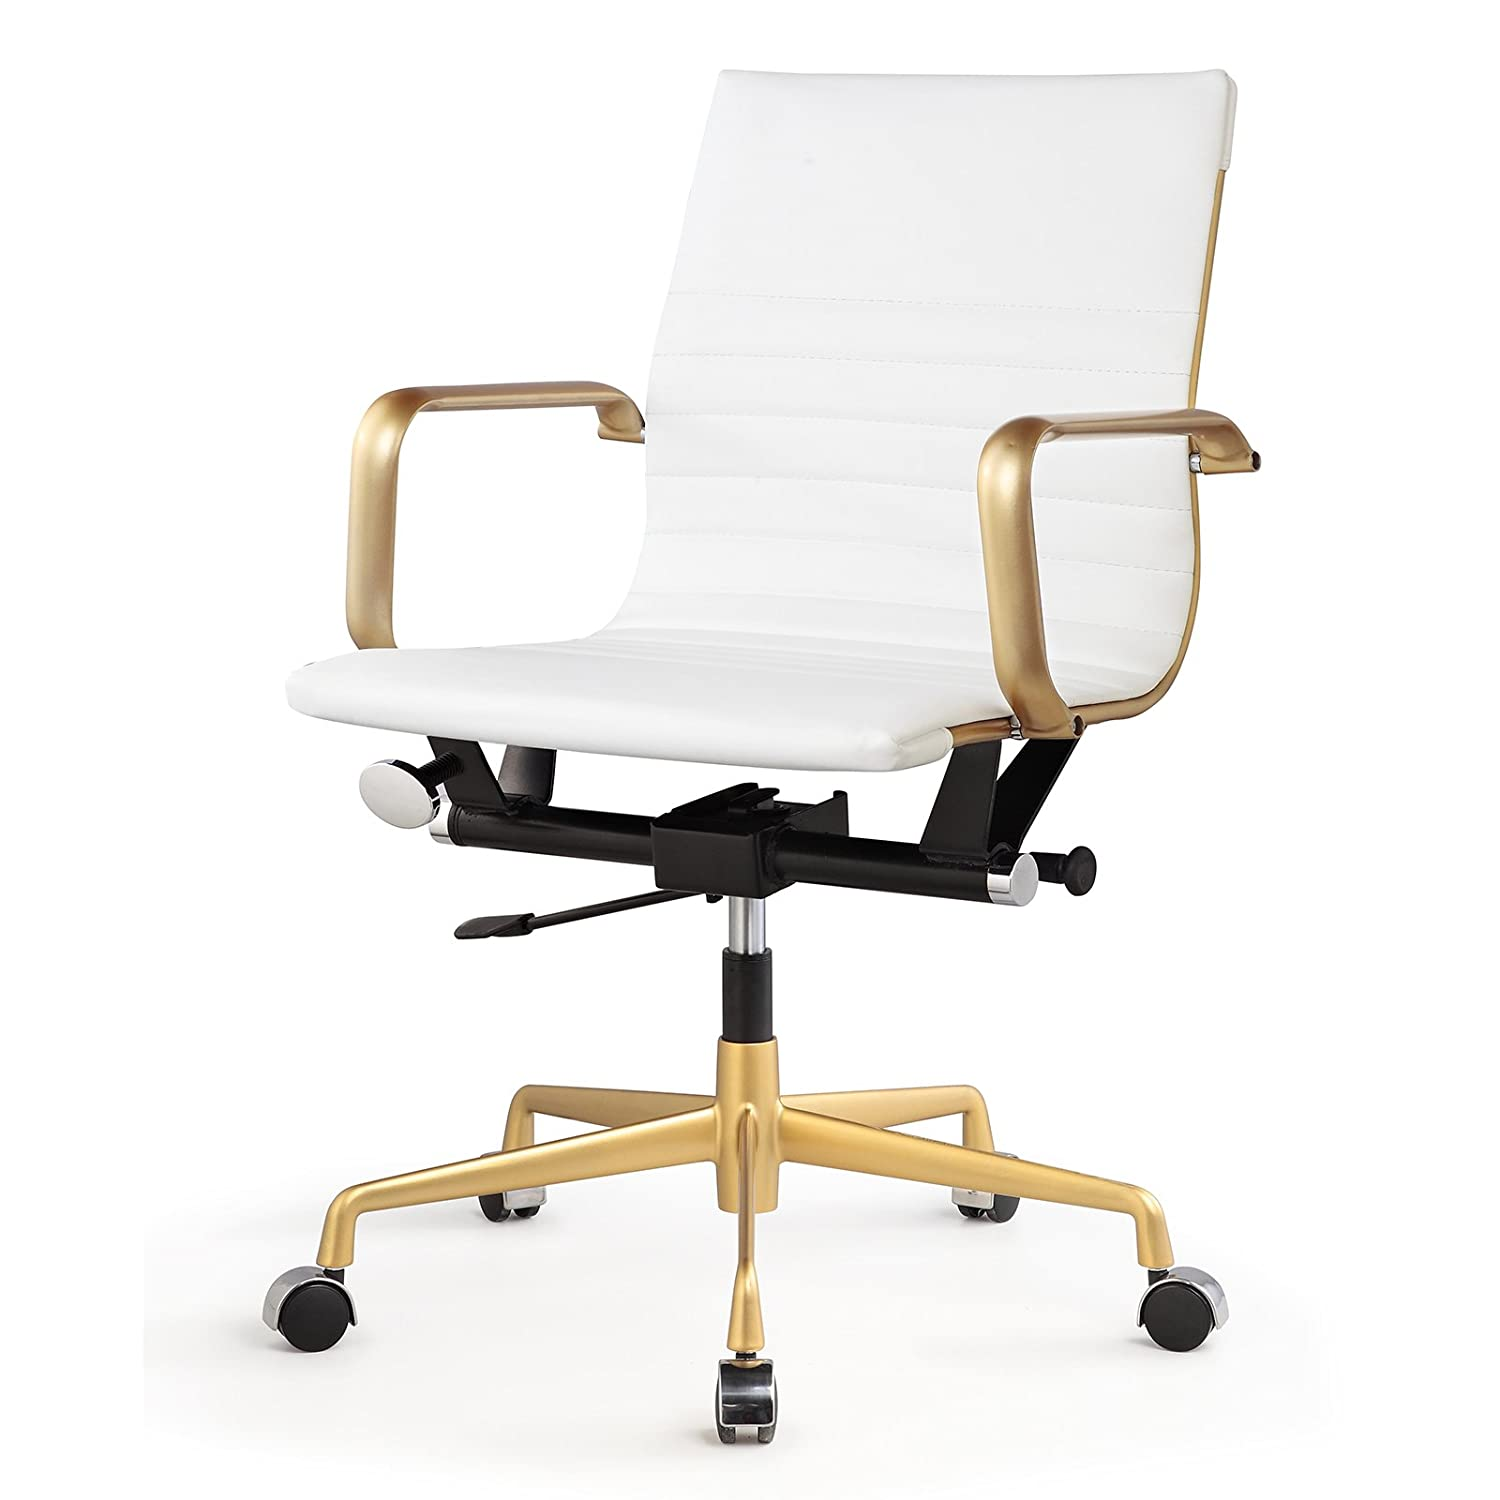 Amazon MEELANO 348 GD WHI fice Chair in Vegan Leather Gold